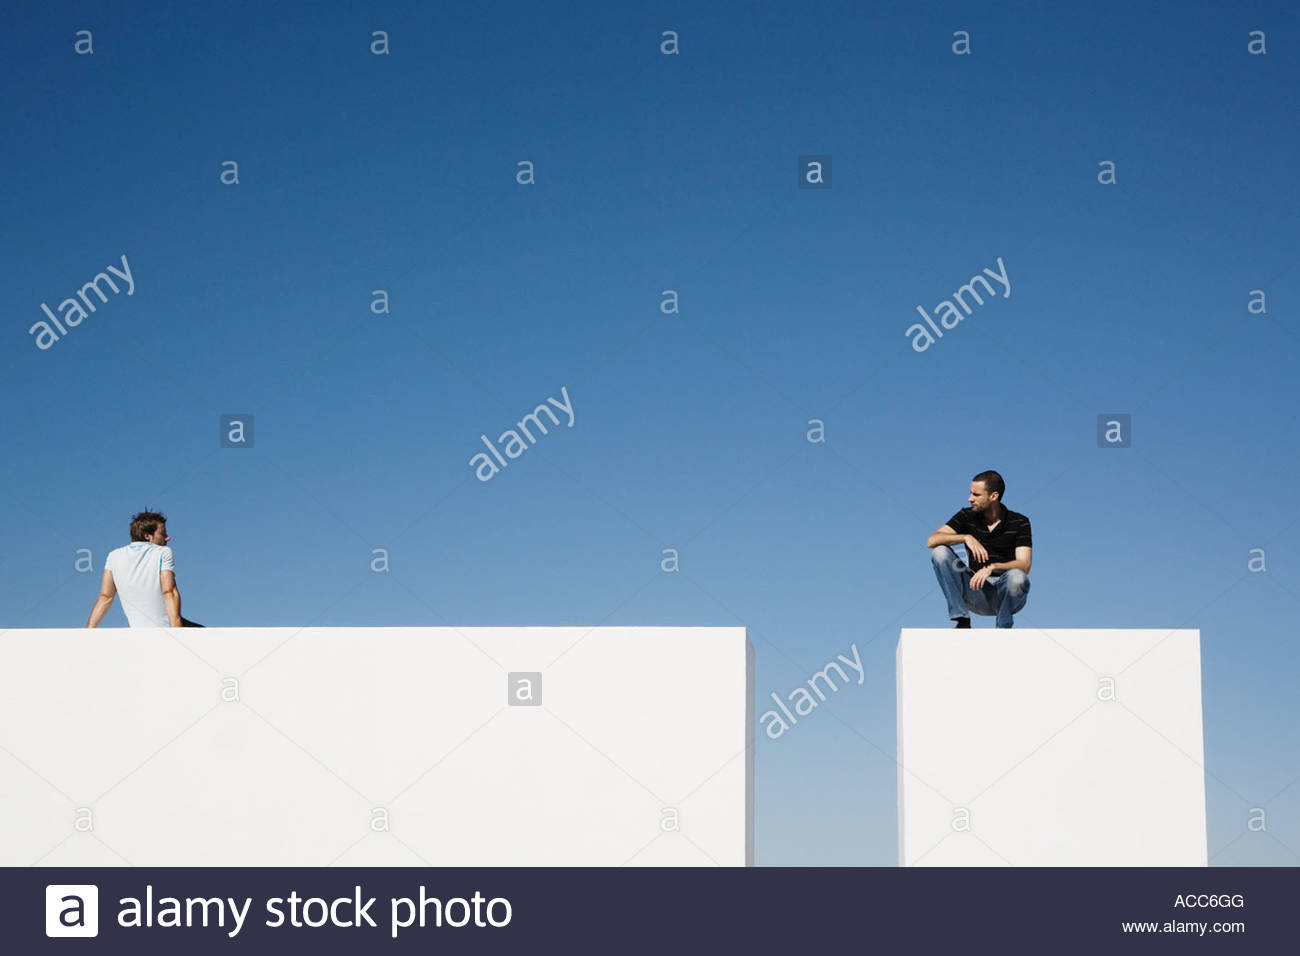 Man sitting on wall outdoors and man on pedestal - Stock Image